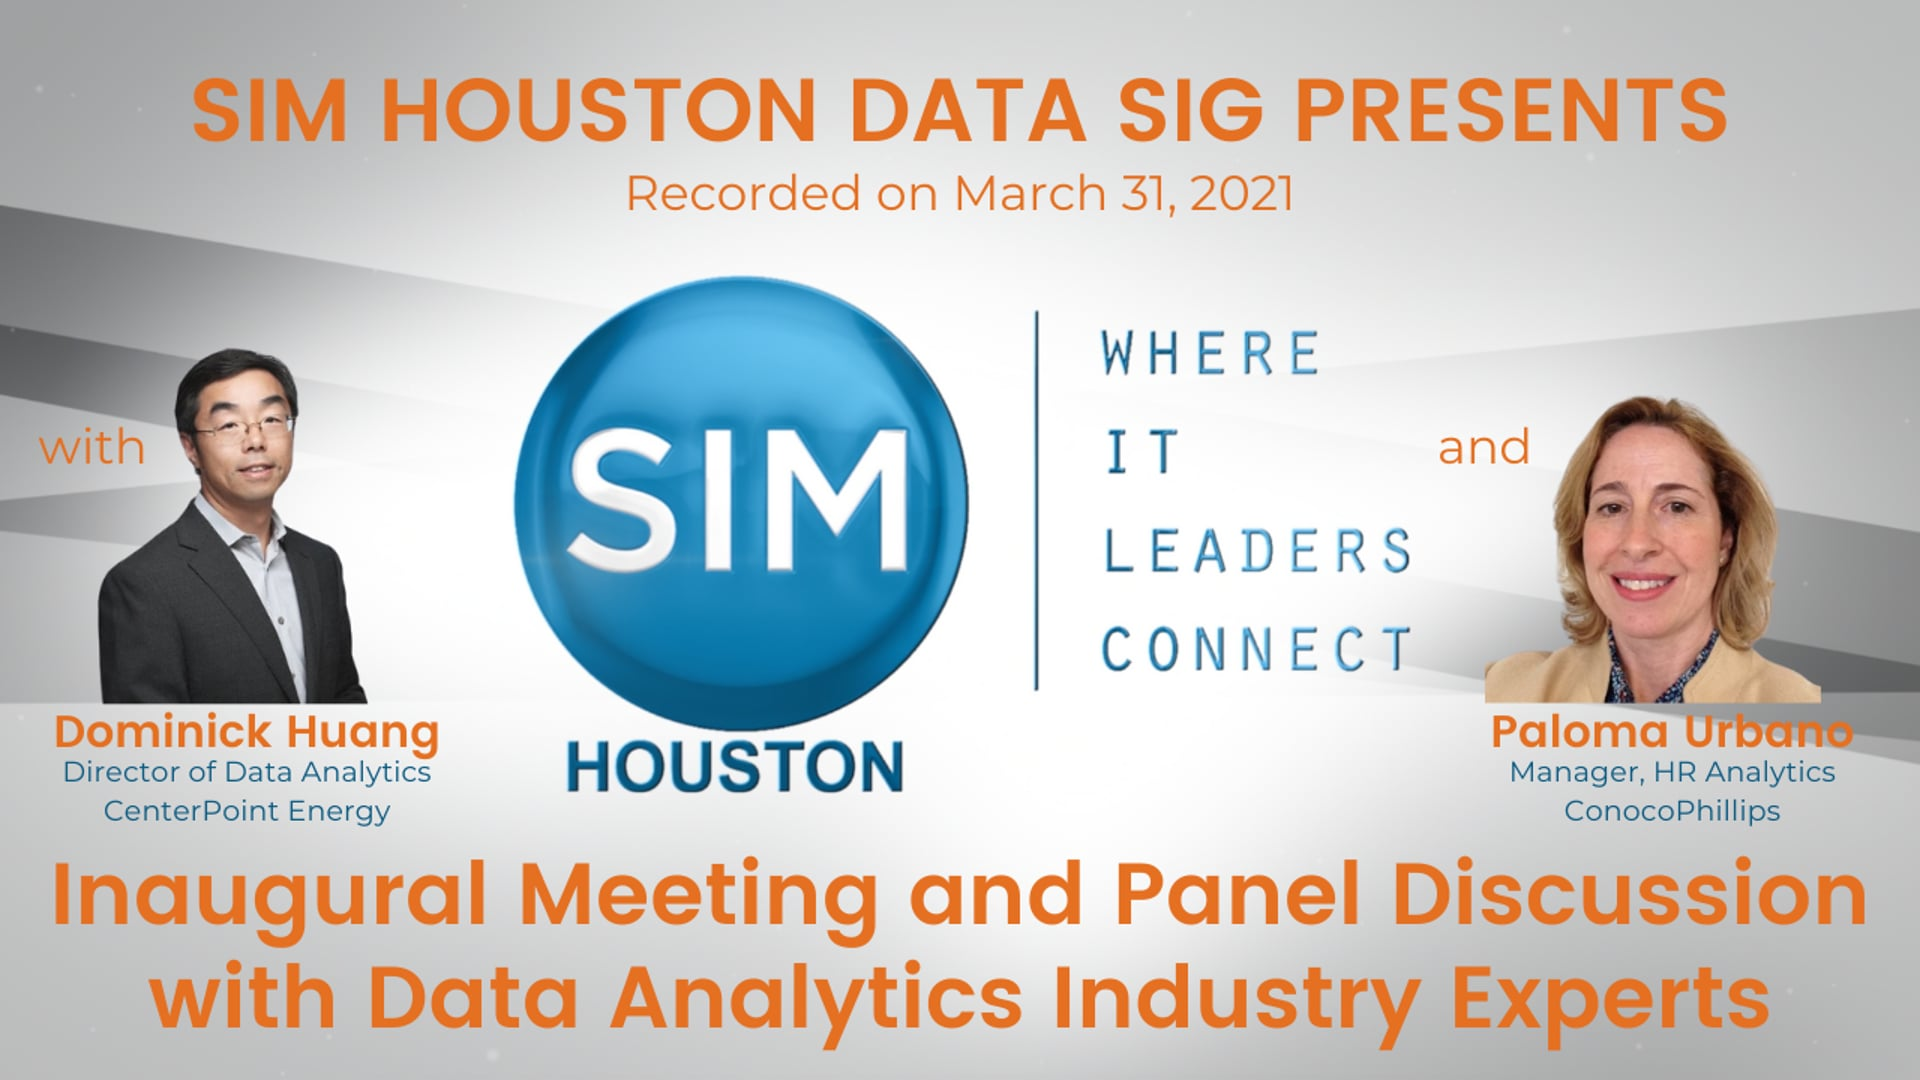 SIM Houston Data SIG Inaugural Meeting and Panel Discussion with Data Analytics Industry Experts